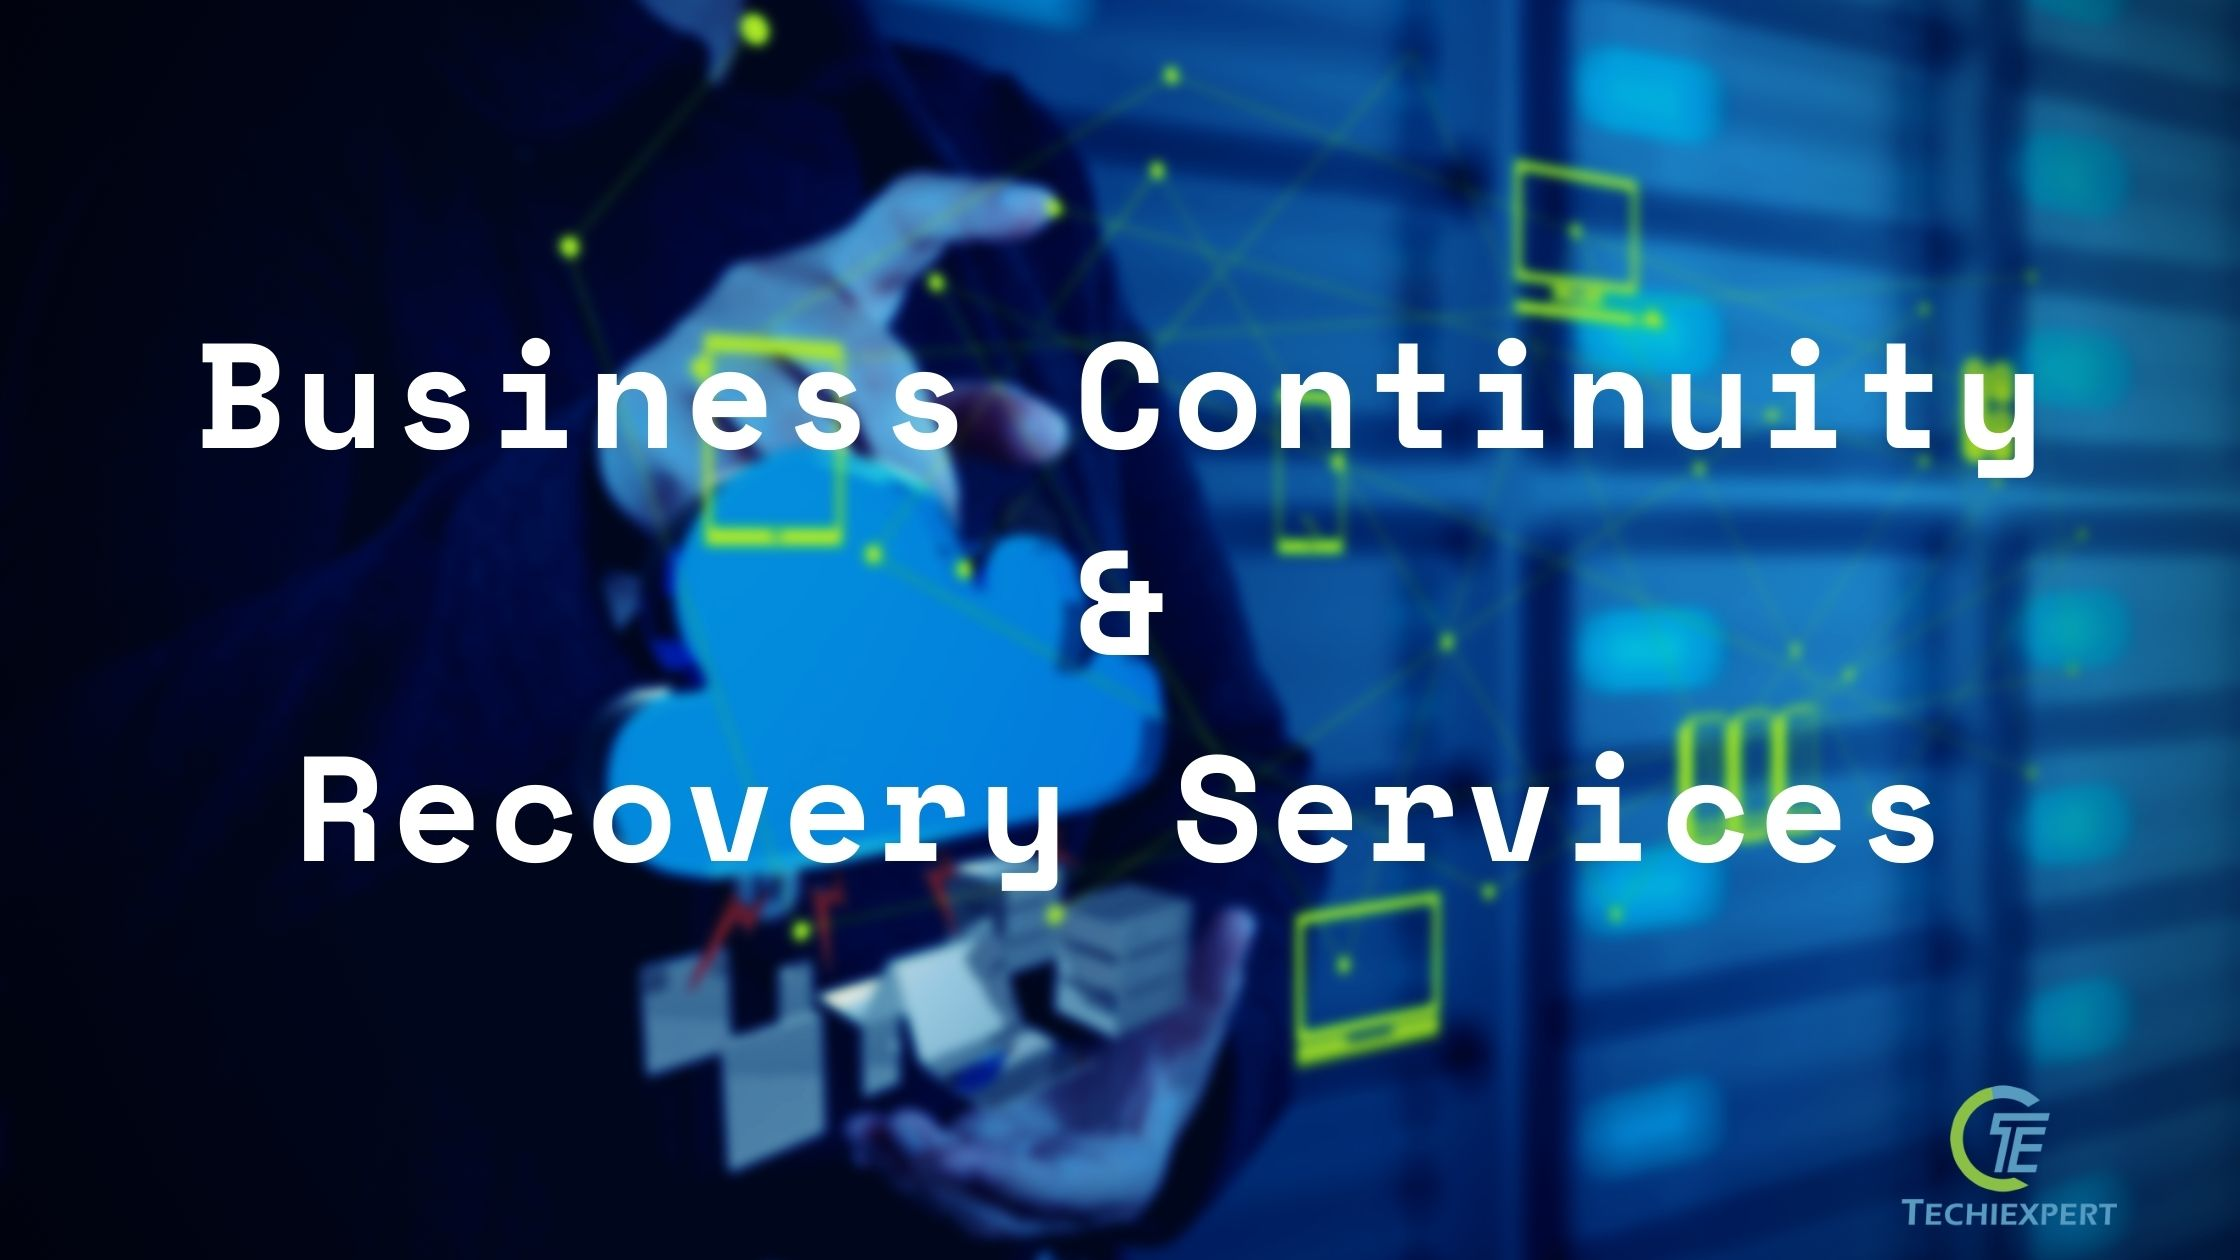 Business Continuity & Recovery Services